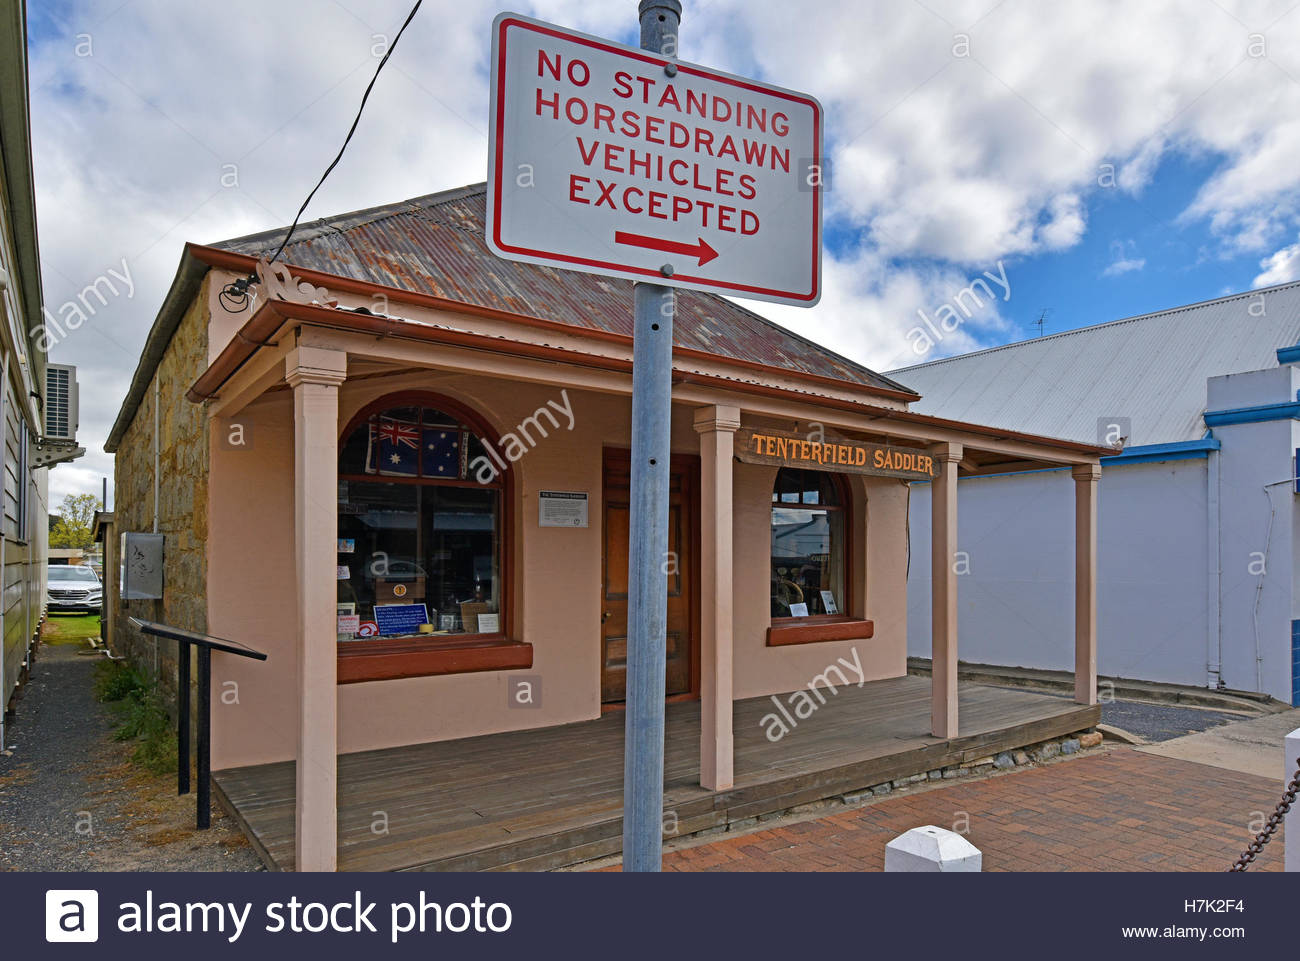 Tenterfield Saddler Tenterfield, the tenterfield saddlery building the inspiration for the peter ...